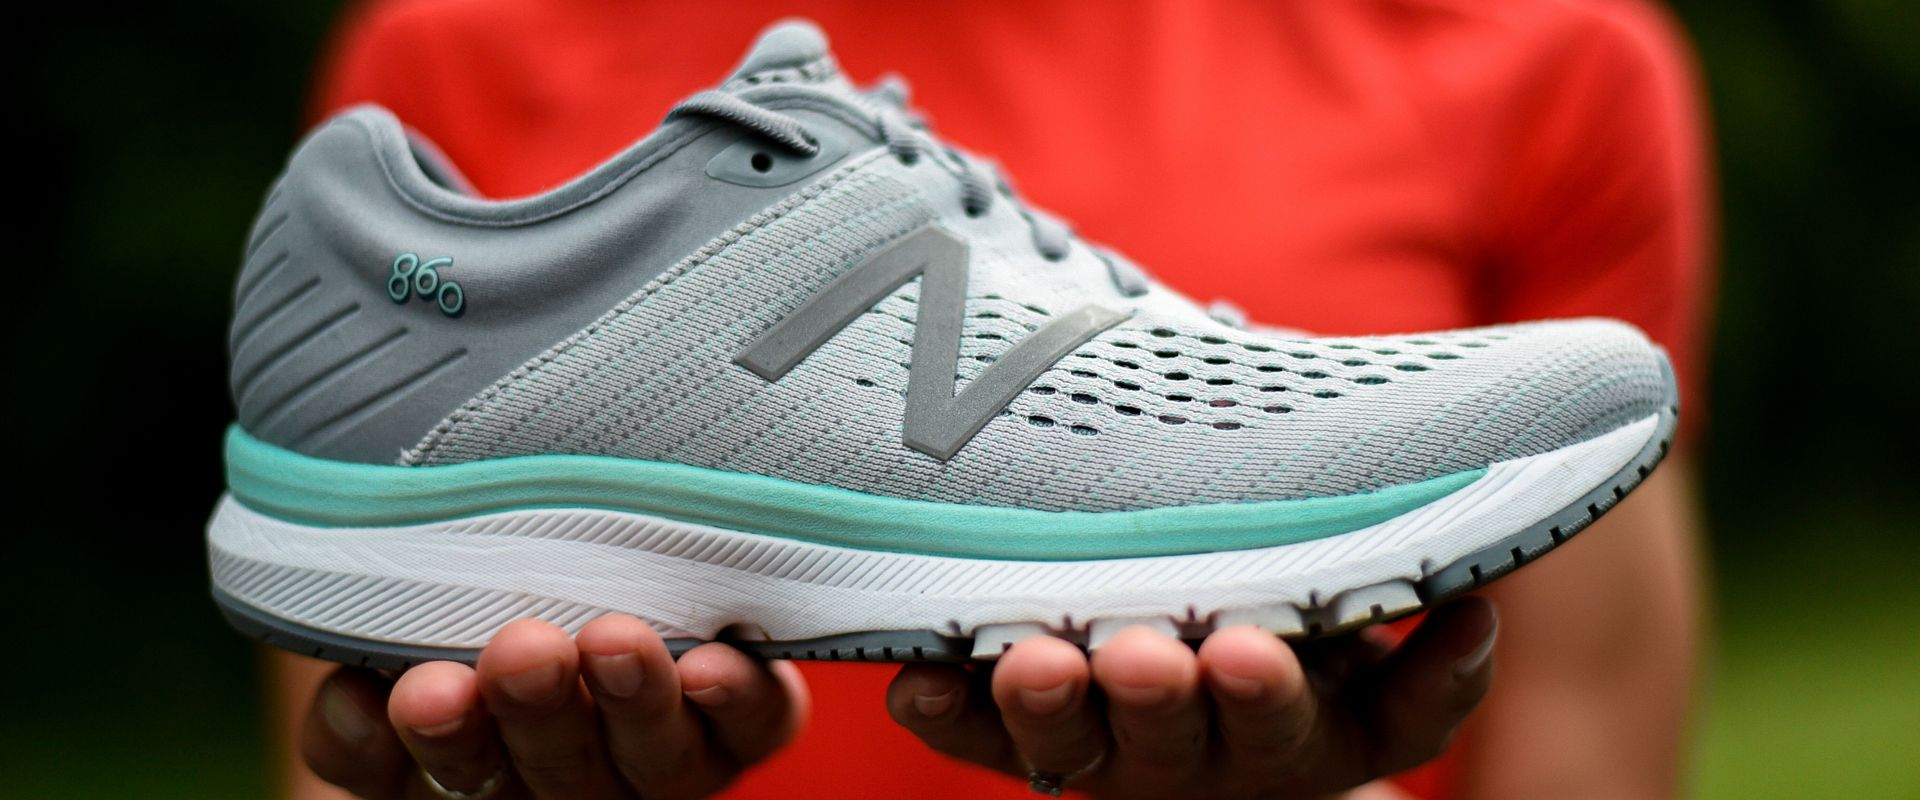 Shoe Review: New Balance 860v10 | Fleet Feet